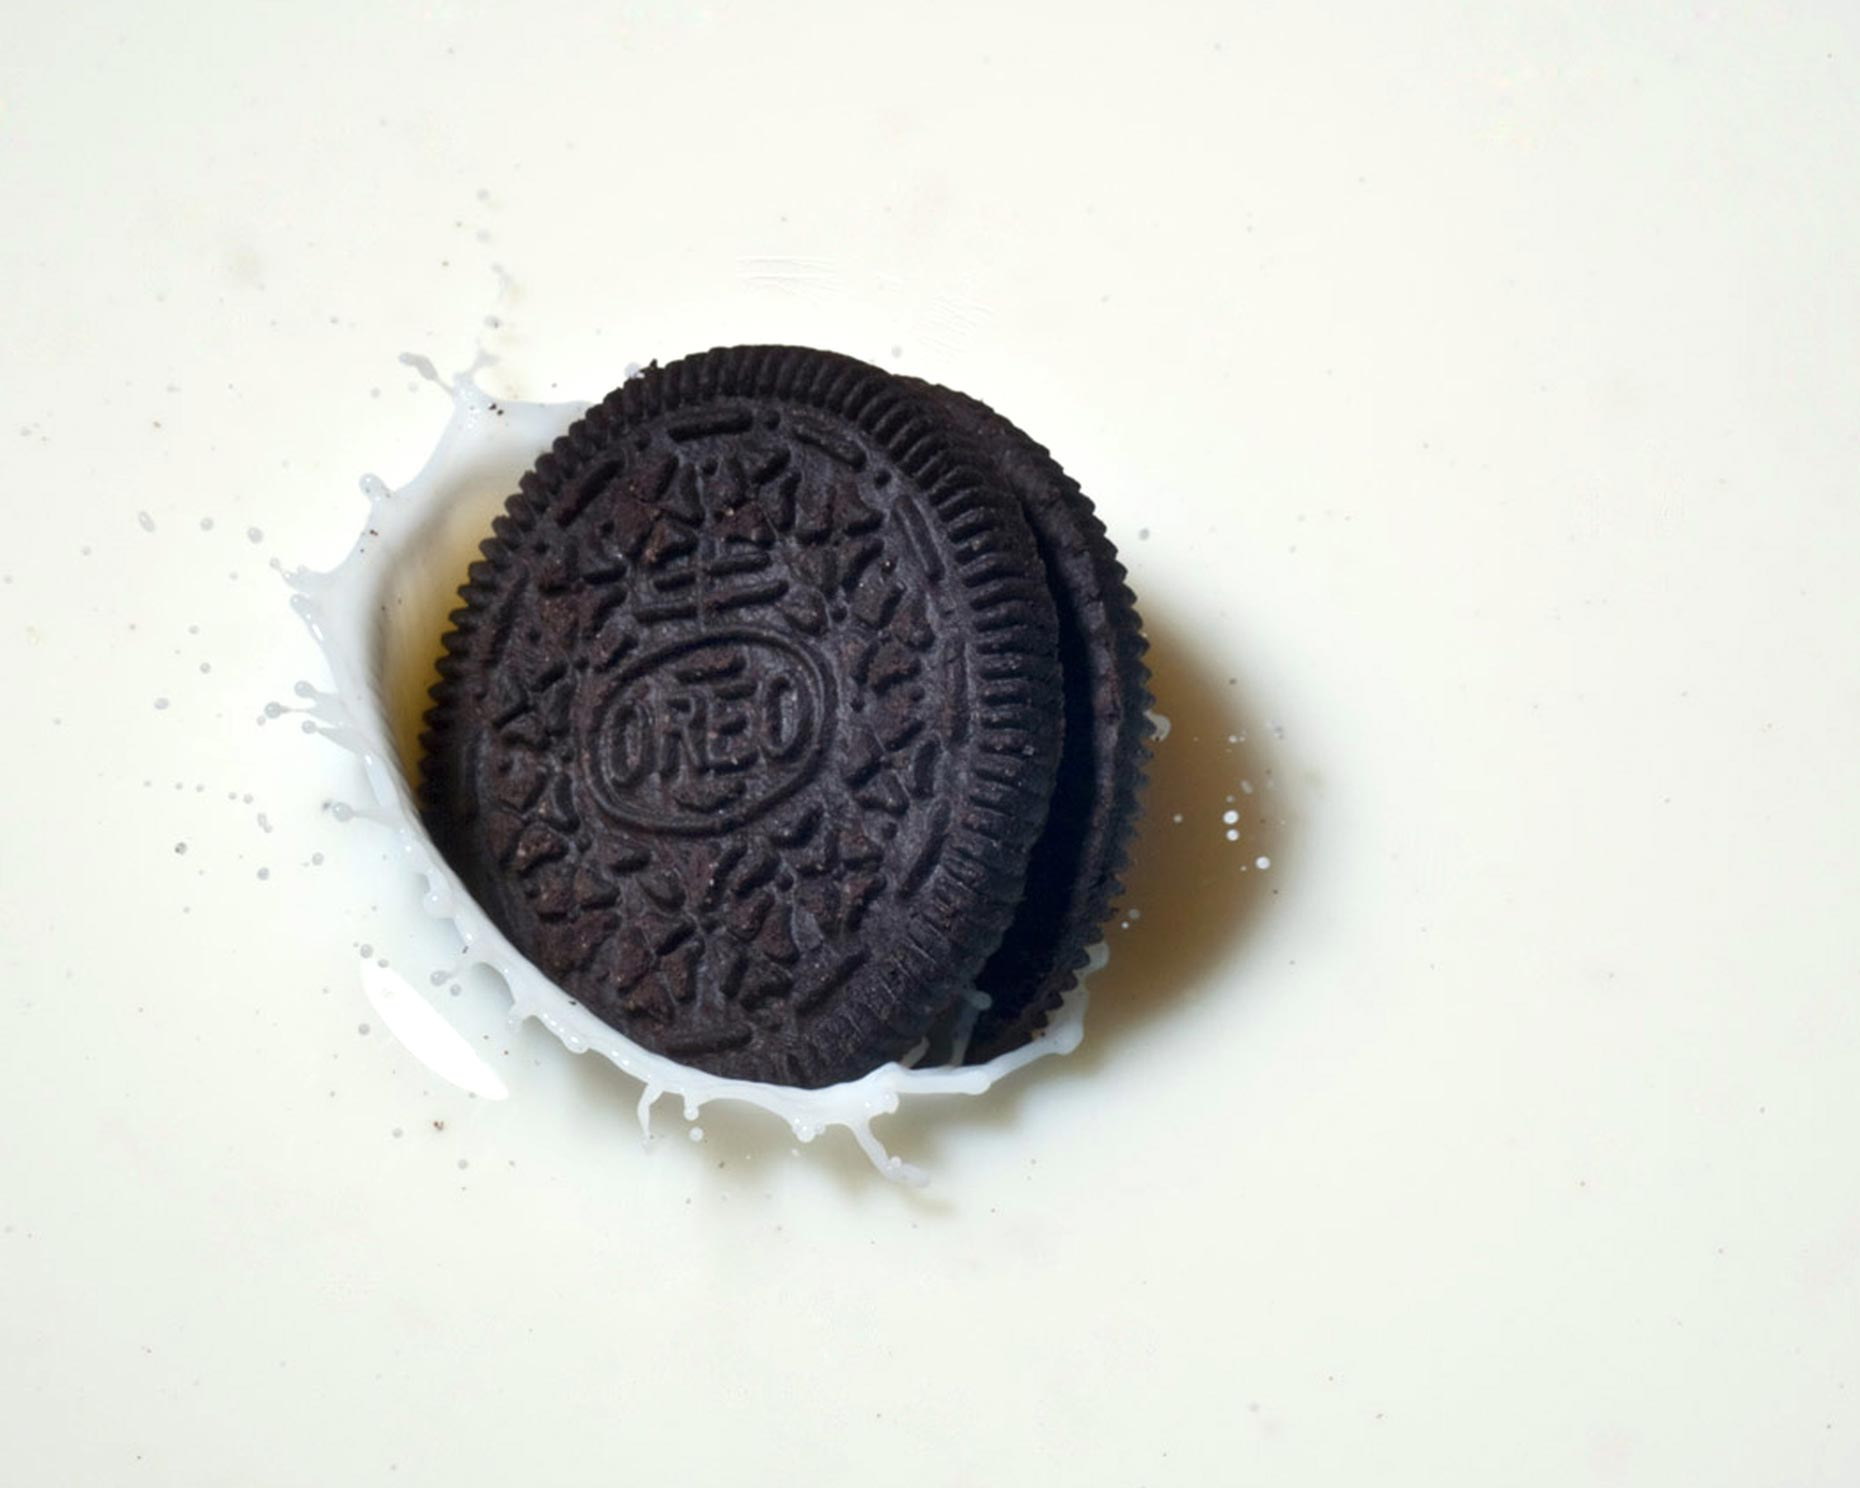 Dessert Photography | Oreo Cookie Splashing  in Milk